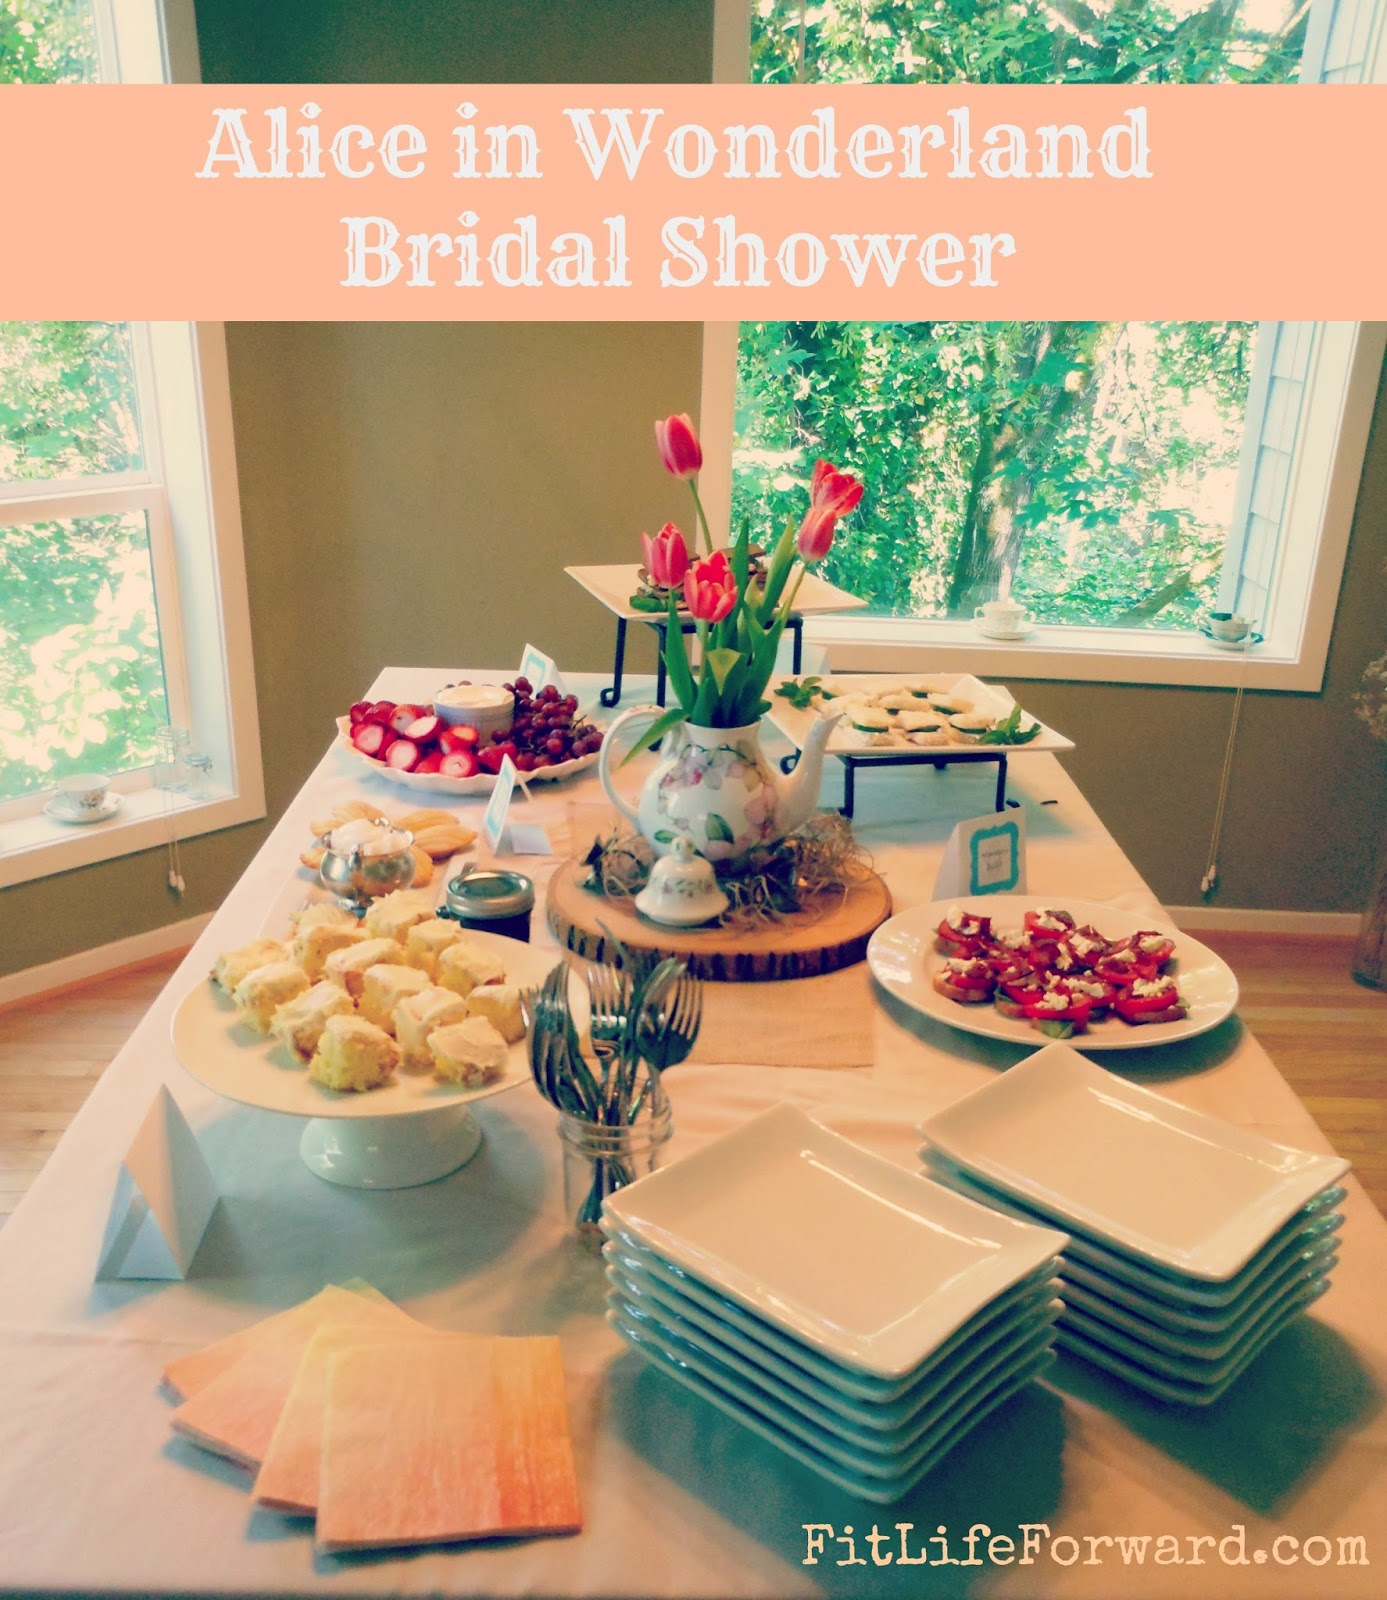 Alice in Wonderland Bridal Shower